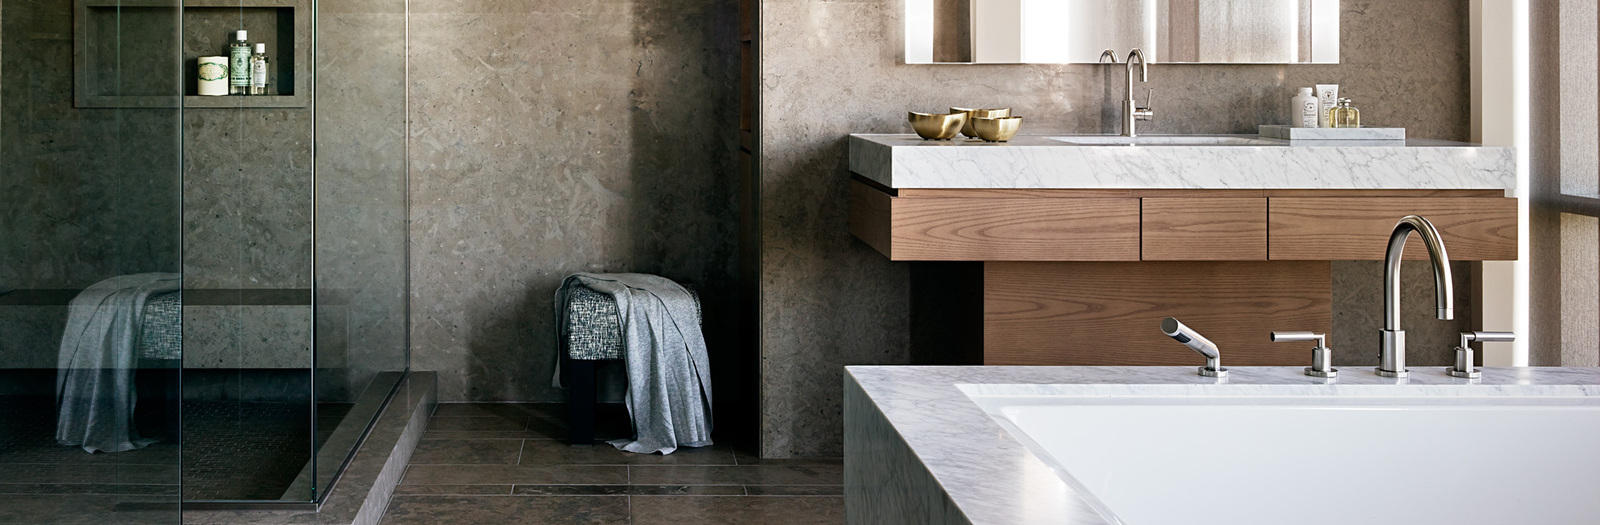 Contemporary Bathroom with side lighted medicine cabinet